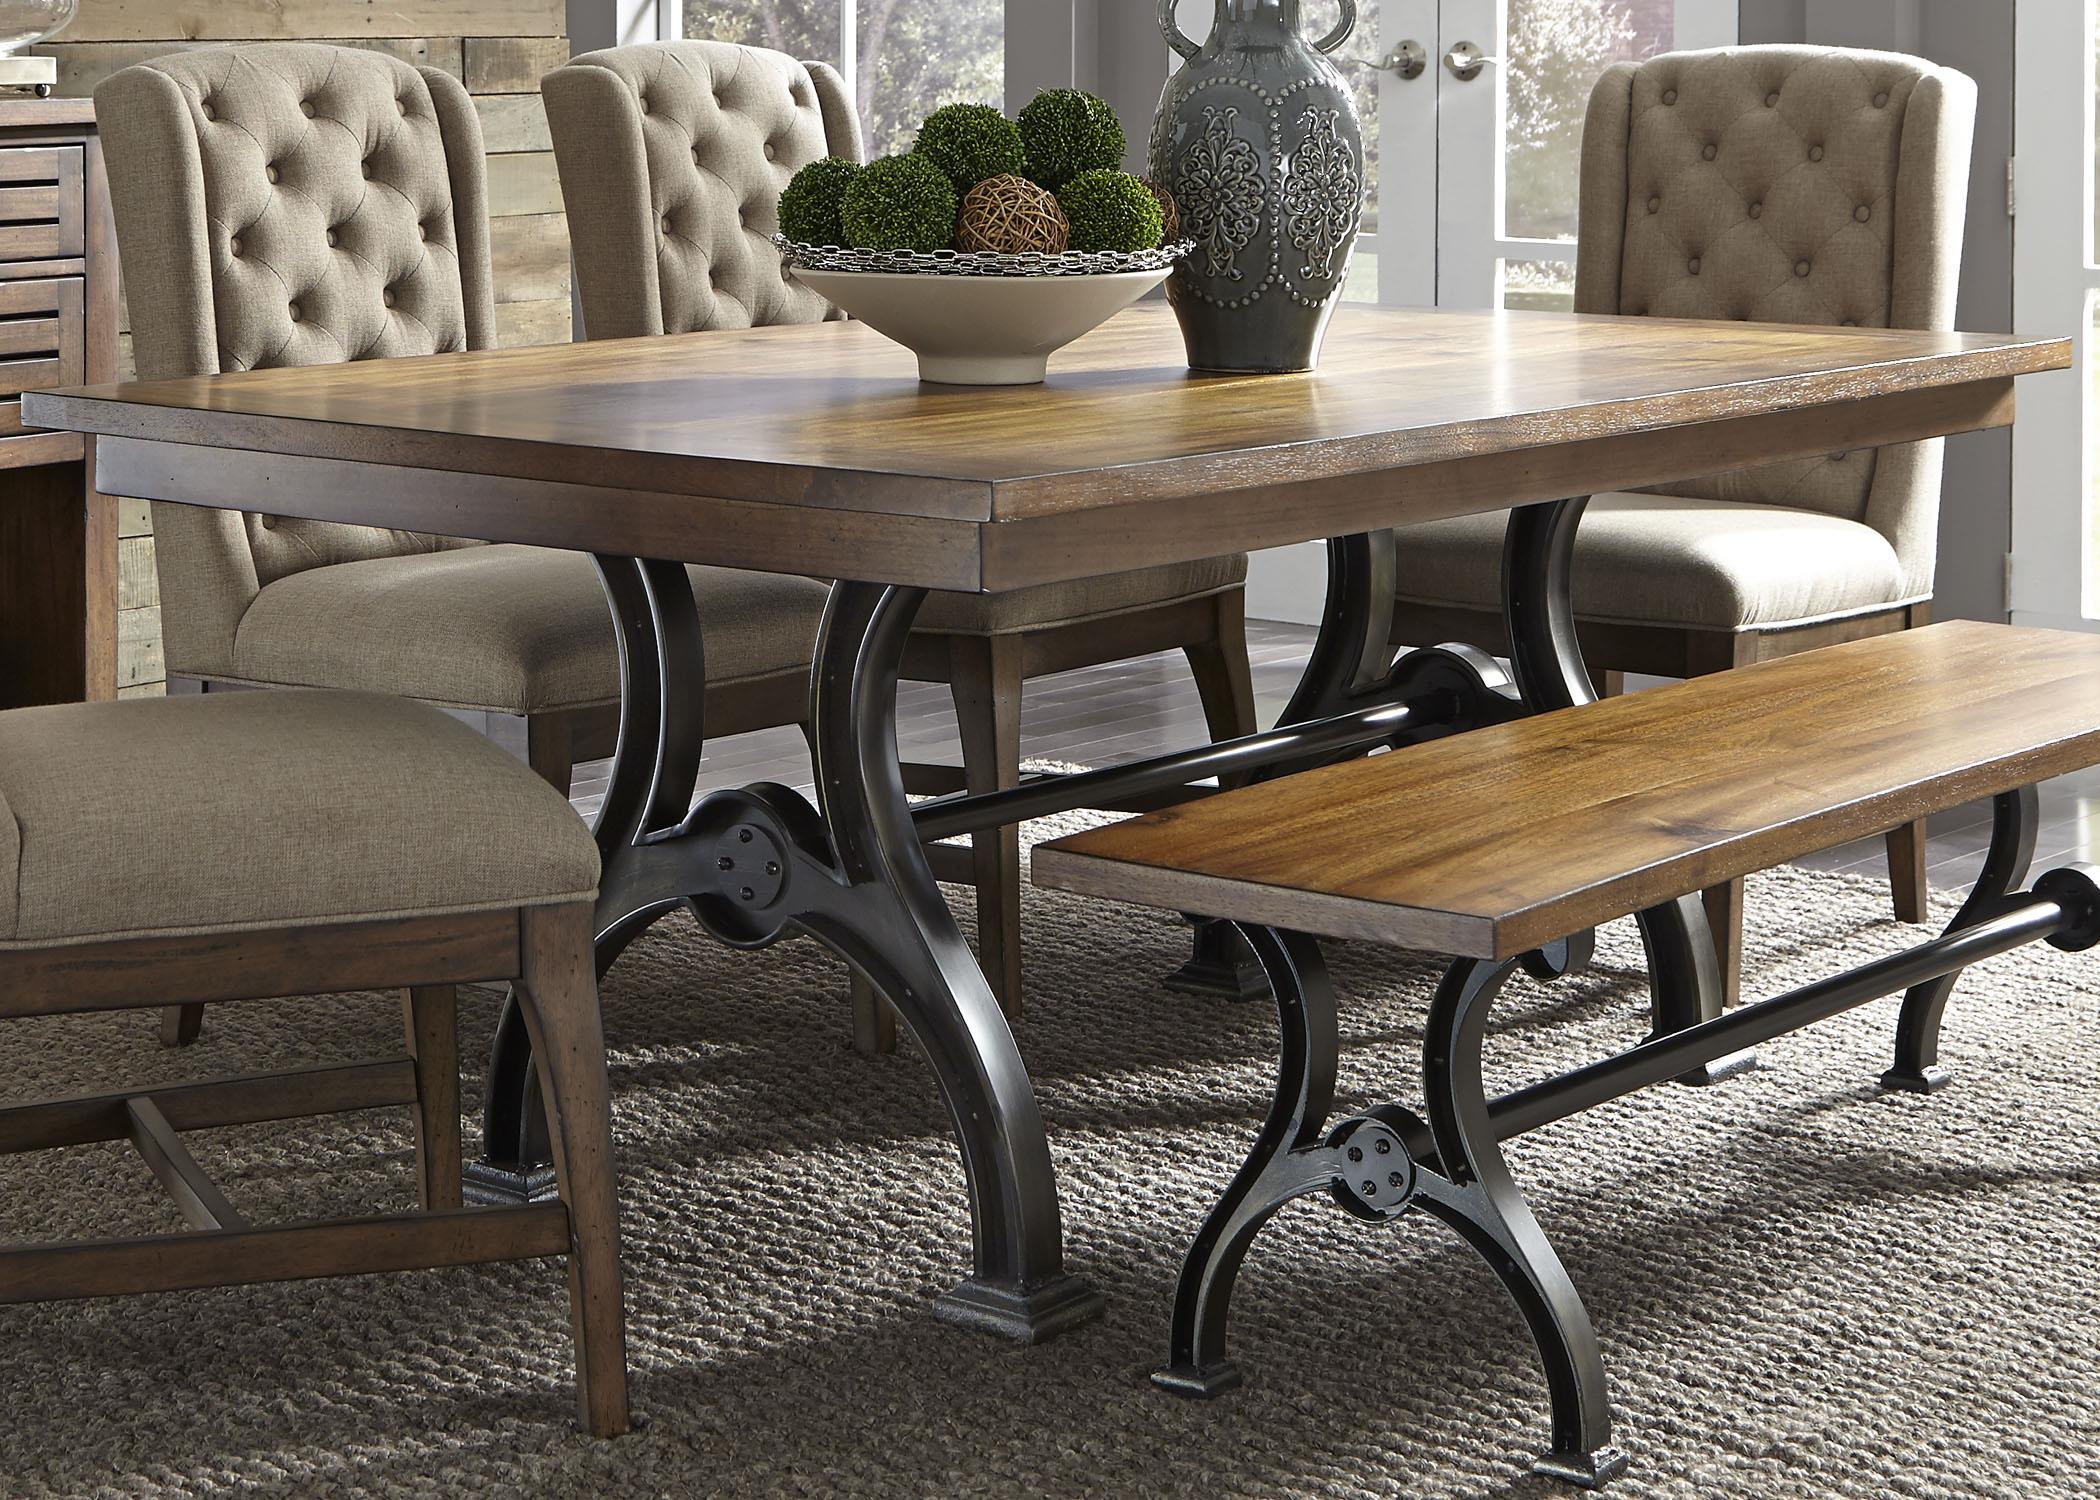 liberty dining chairs the empty chair gospel song furniture arlington trestle table with metal base wayside